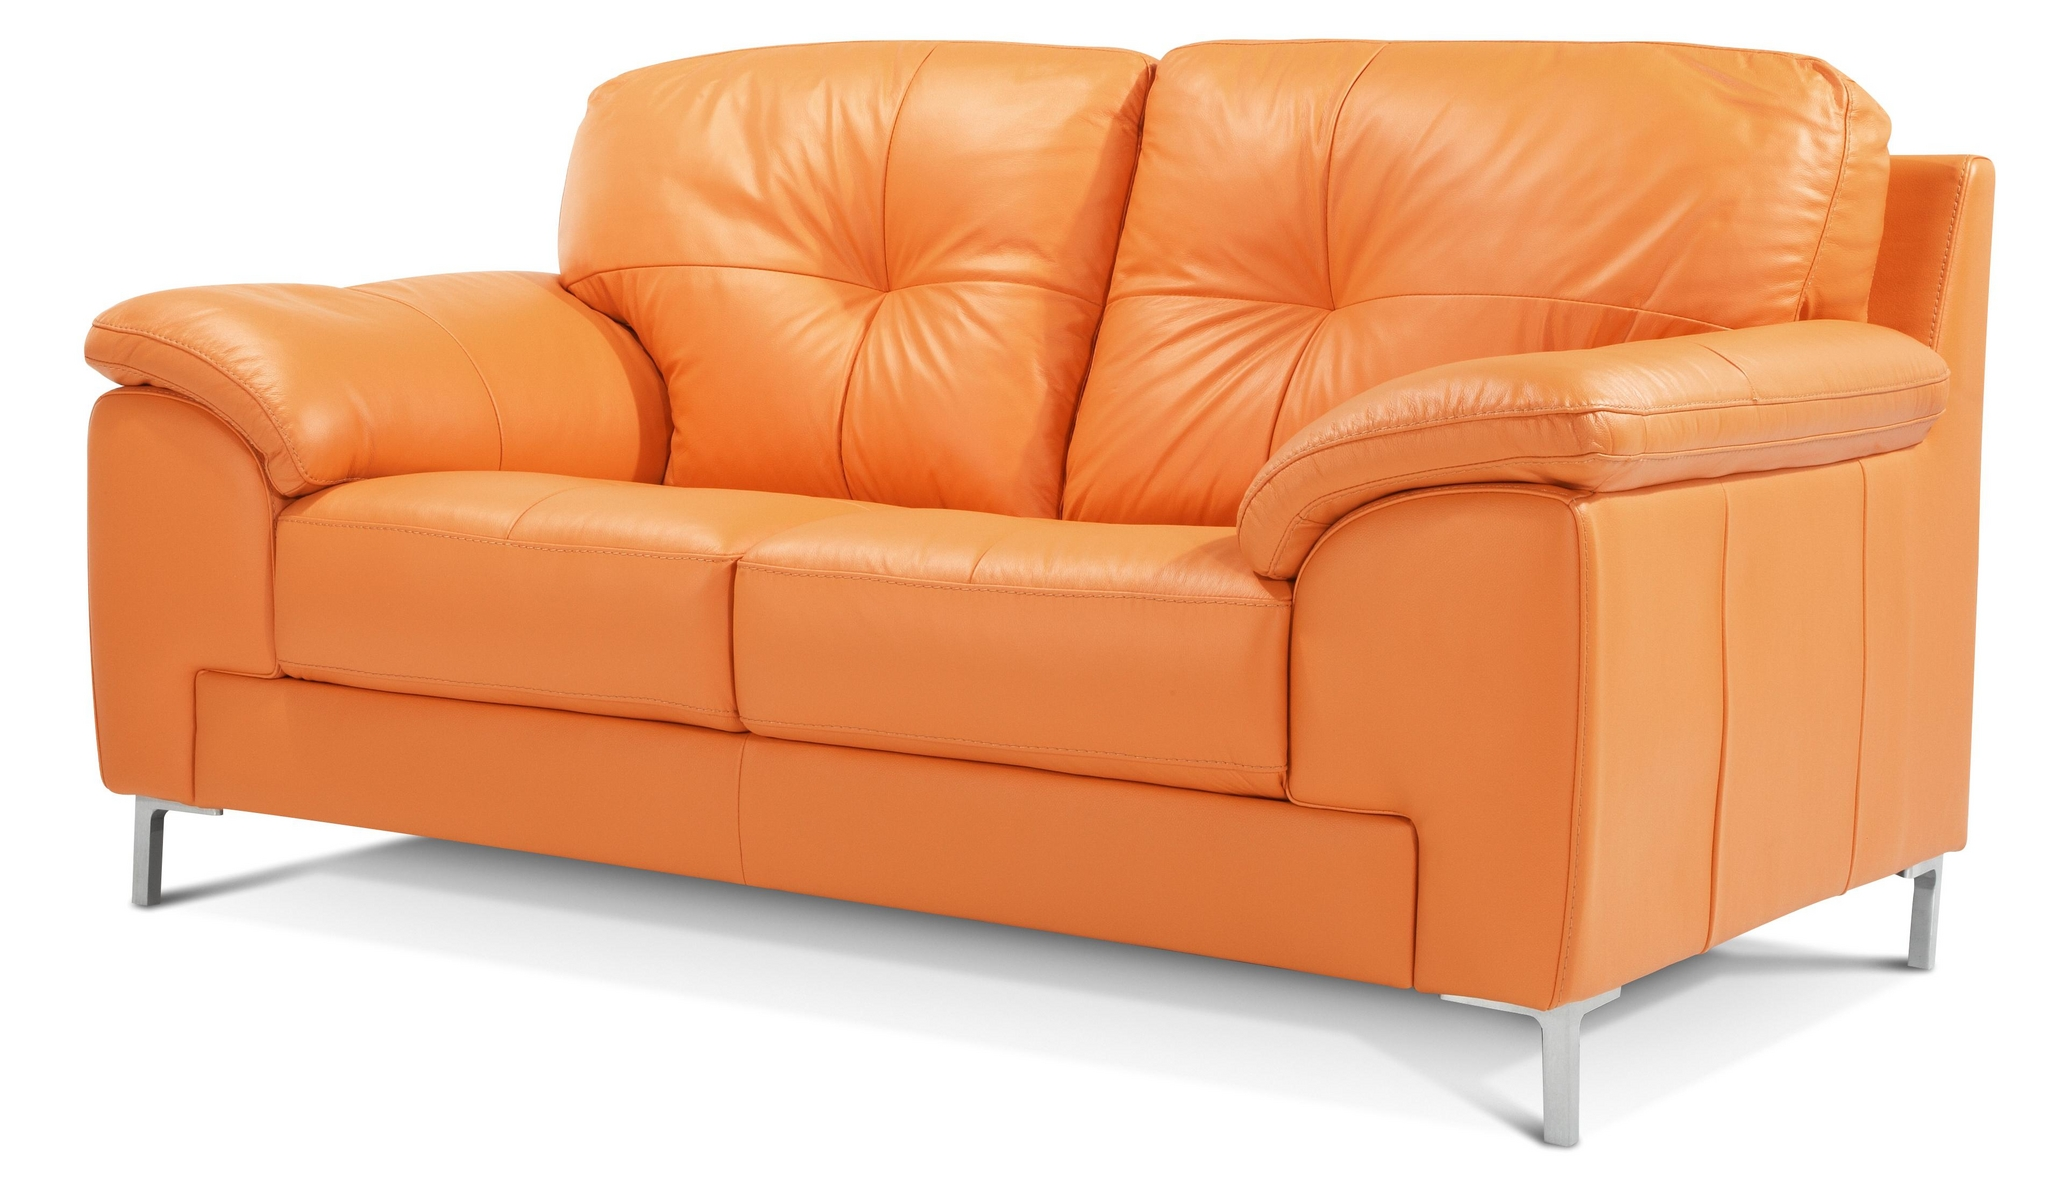 DFS AINSLEY 100% REAL LEATHER ORANGE 2 SEATER SOFA